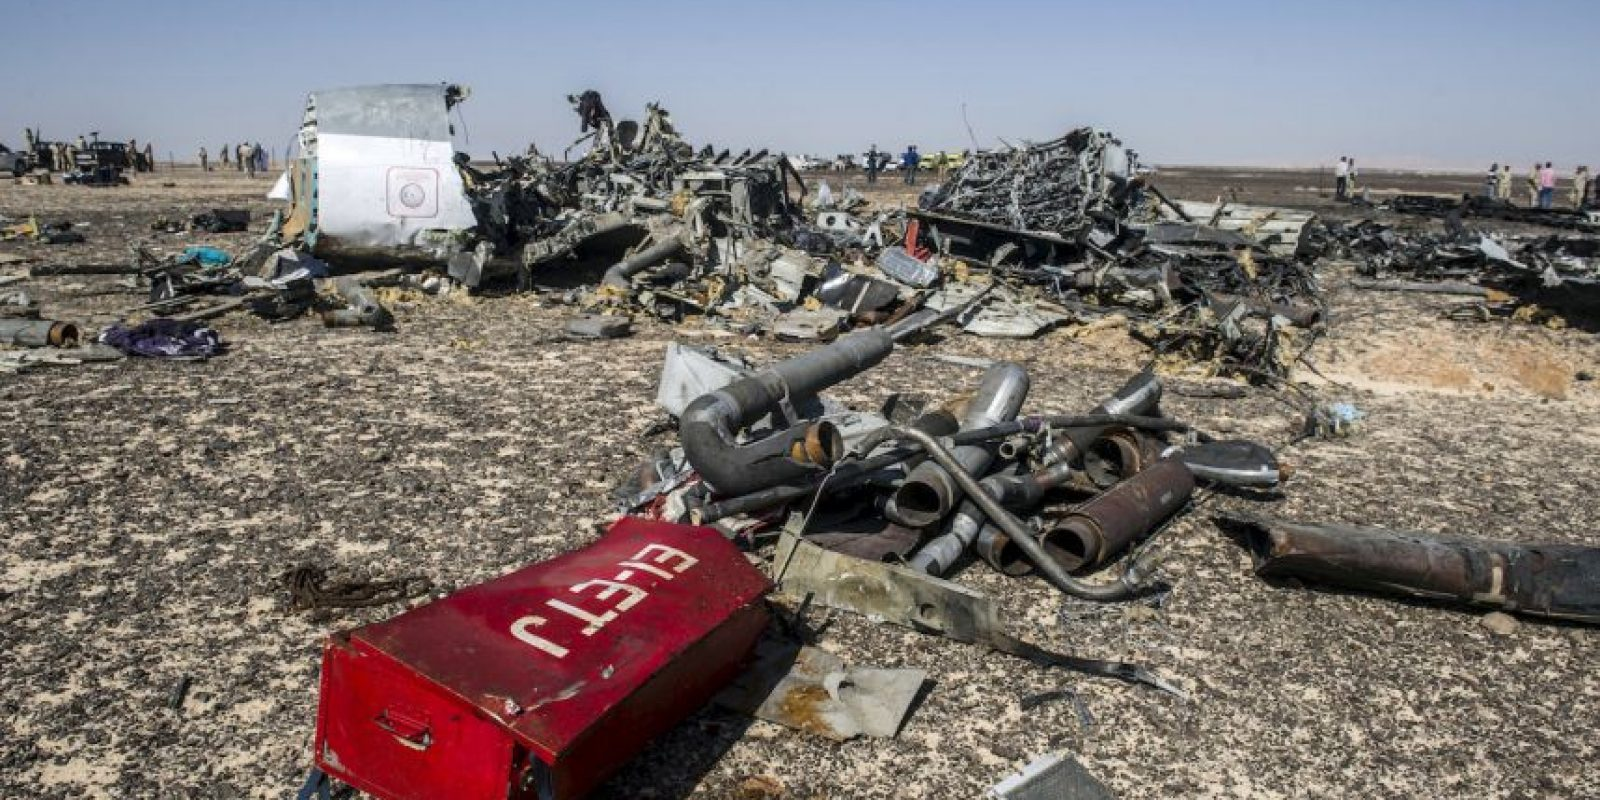 Escombros del avión ruso accidentado. Foto: AFP